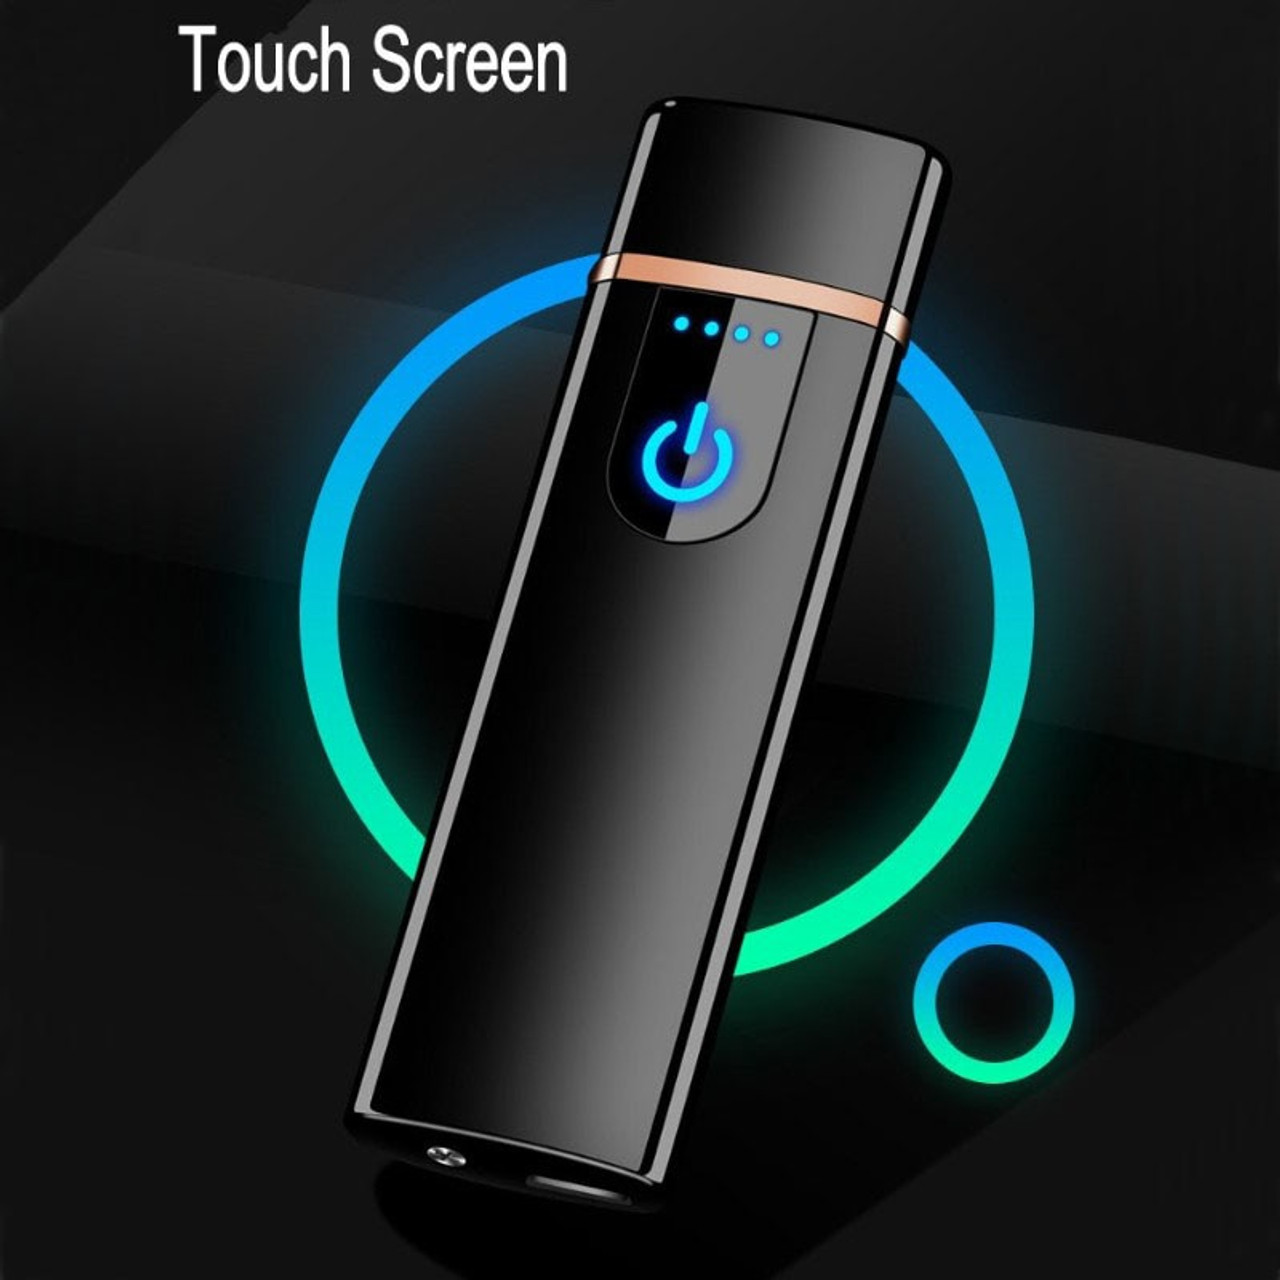 Cigarette Accessories New Usb Charging Double Arc Lighter Plasma Eletronic Pulse Lighters Led Switch Smoking Accessories For Gift Men Weed Vaporizer